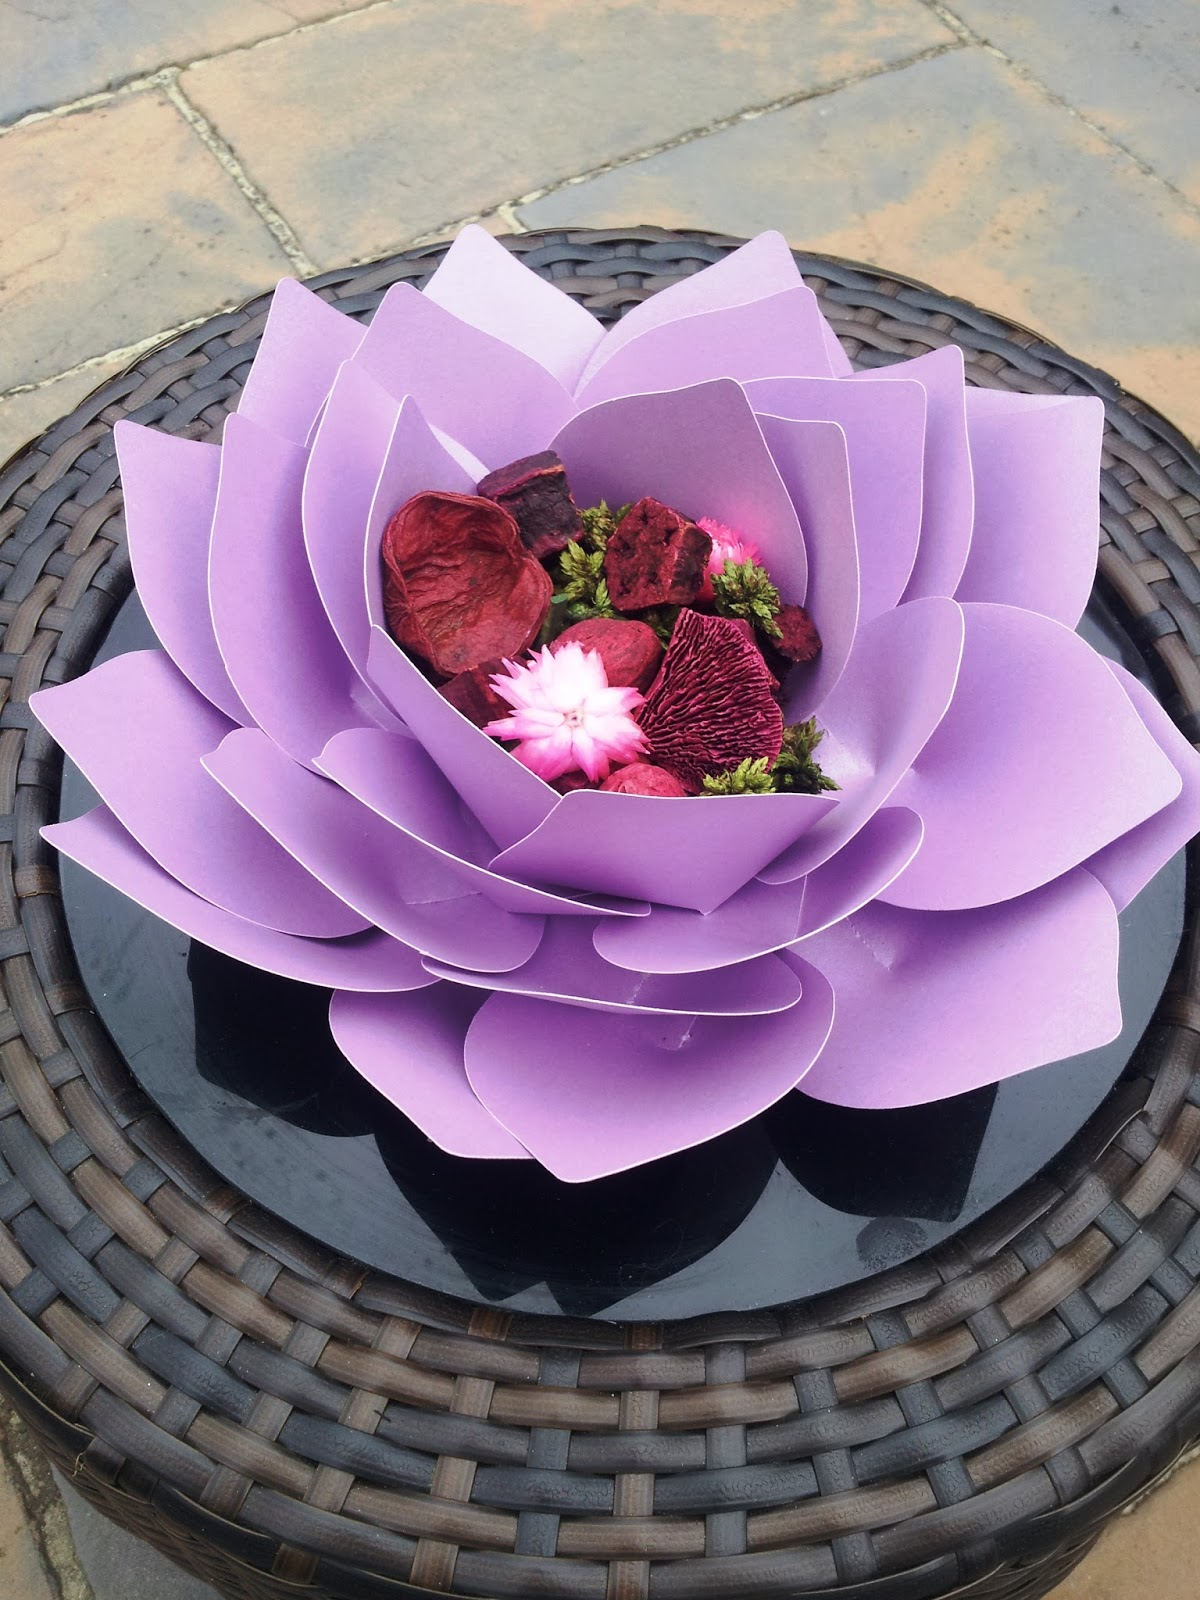 Creative lesley giant paper lotus flower giant paper lotus flower mightylinksfo Gallery